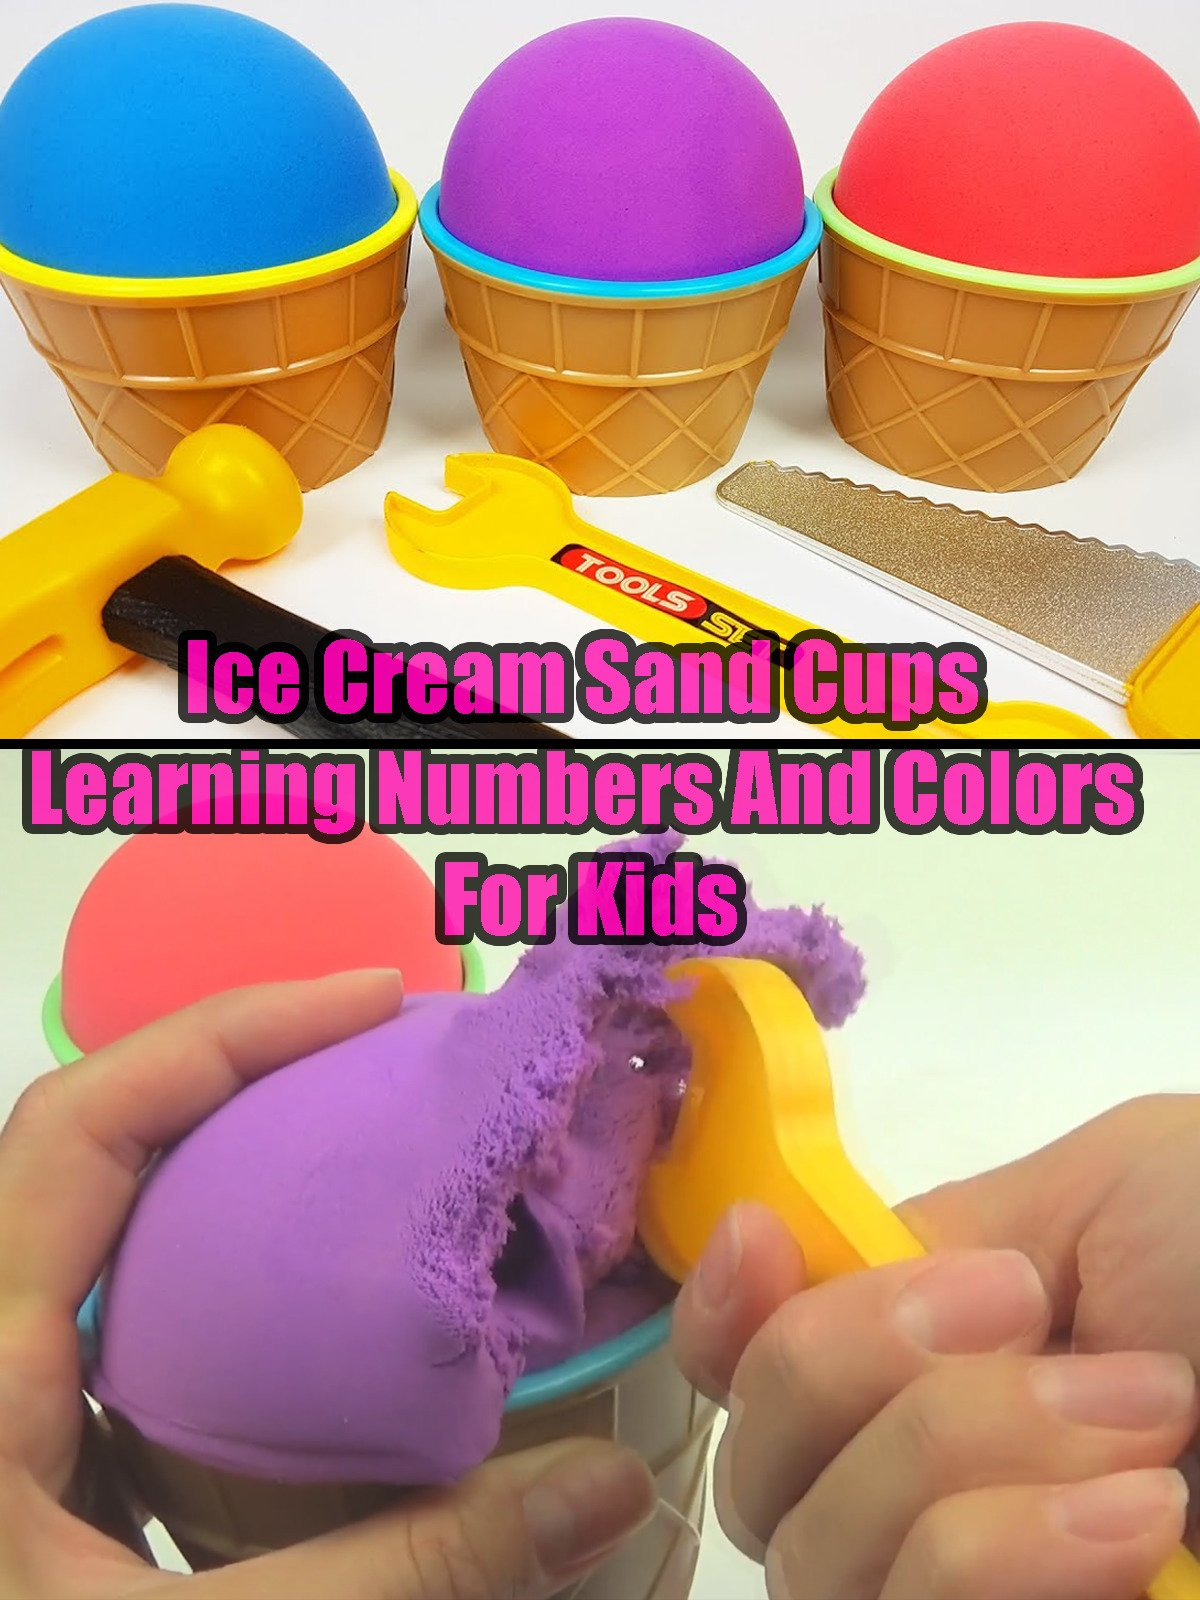 Ice Cream Sand Cups Learning Numbers And Colors For Kids